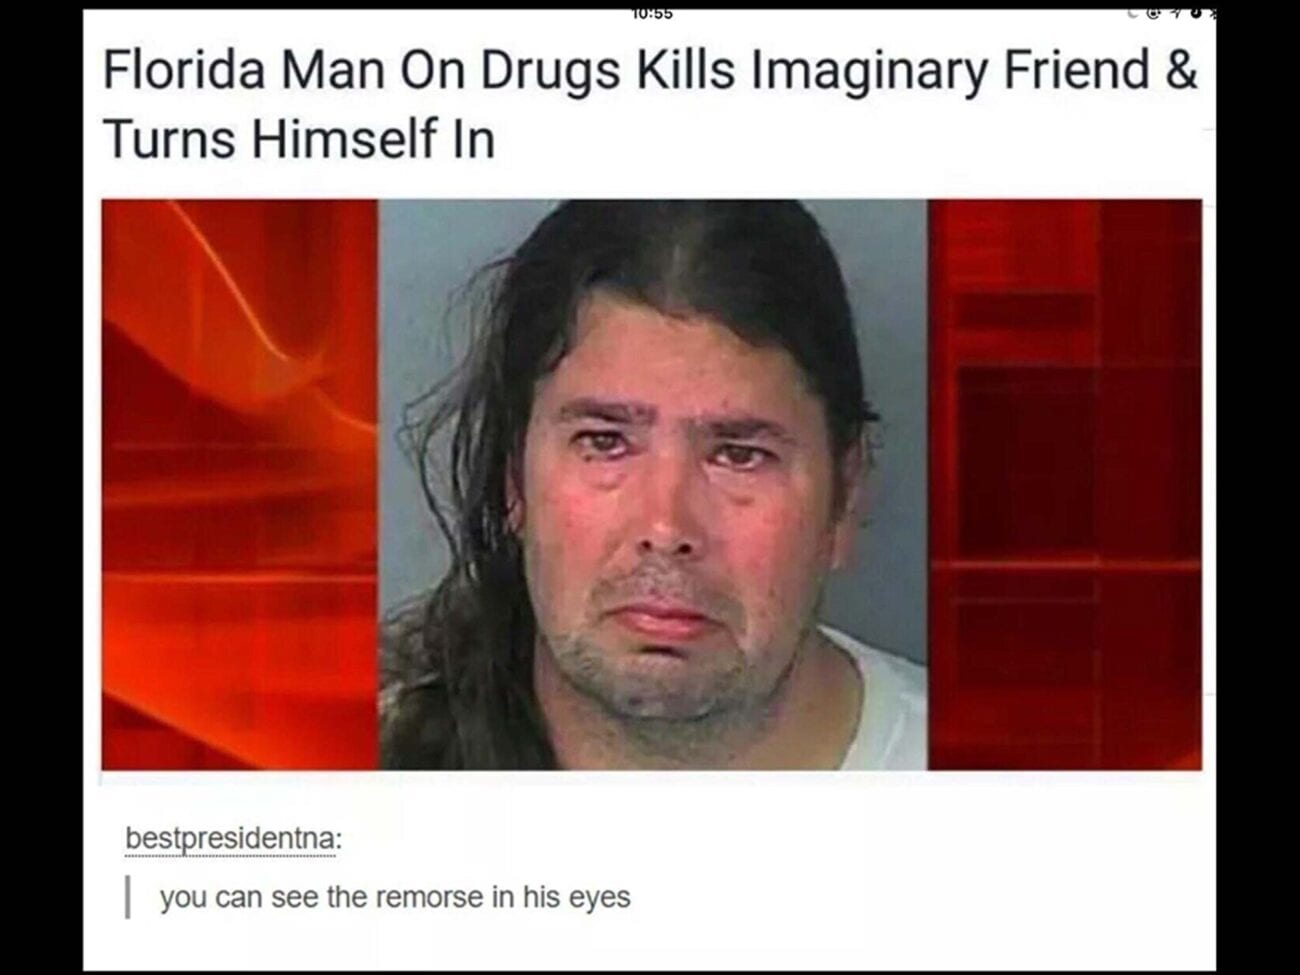 We've all been waiting patiently for this quarantine to end. Luckily we have entertaining Florida Man headlines. Here are a few favorite headlines.